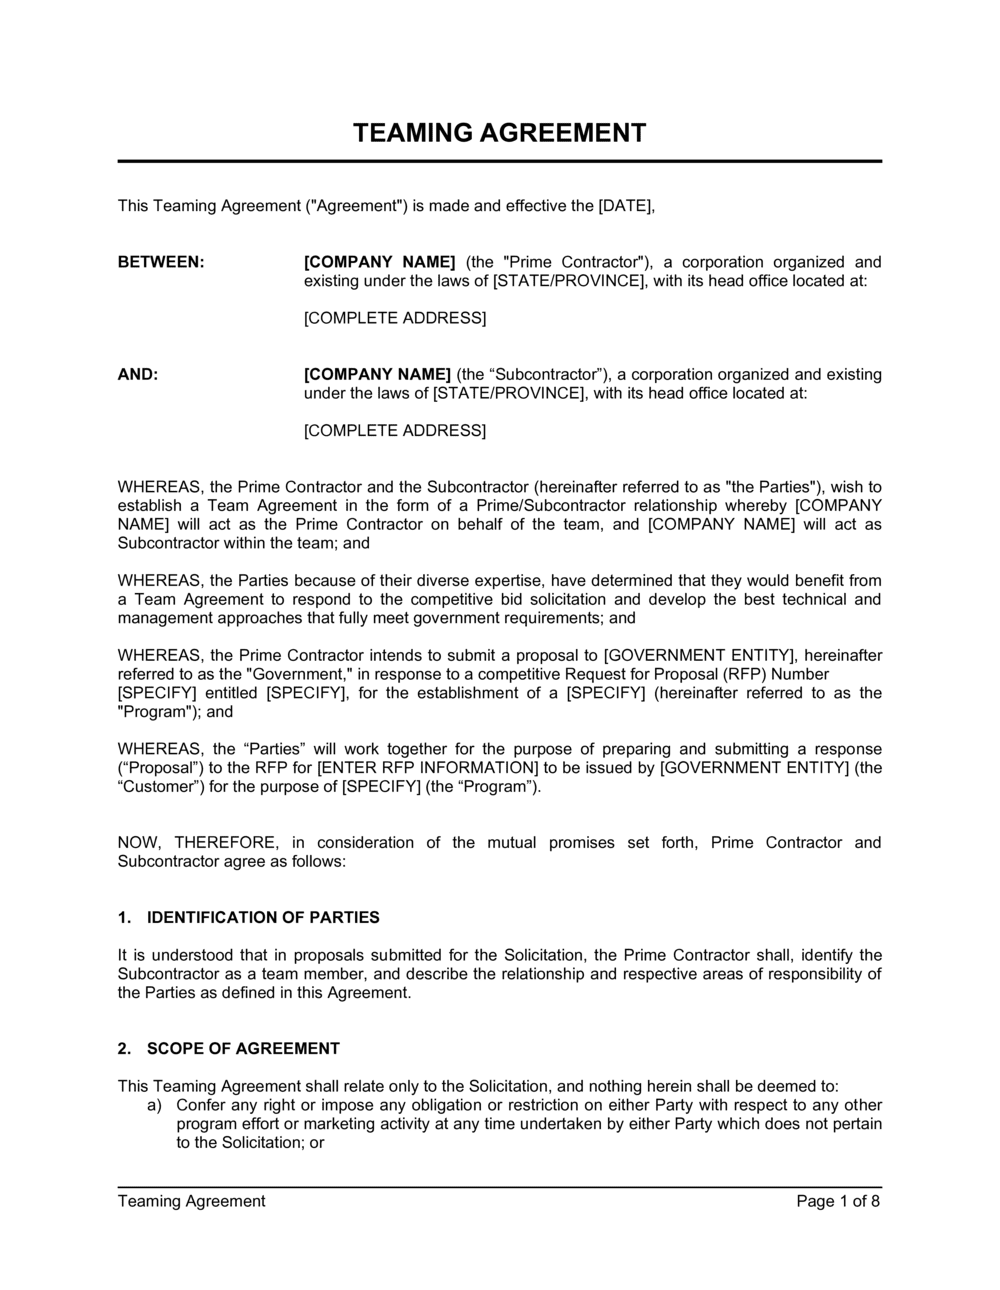 Business-in-a-Box's Teaming Agreement Template